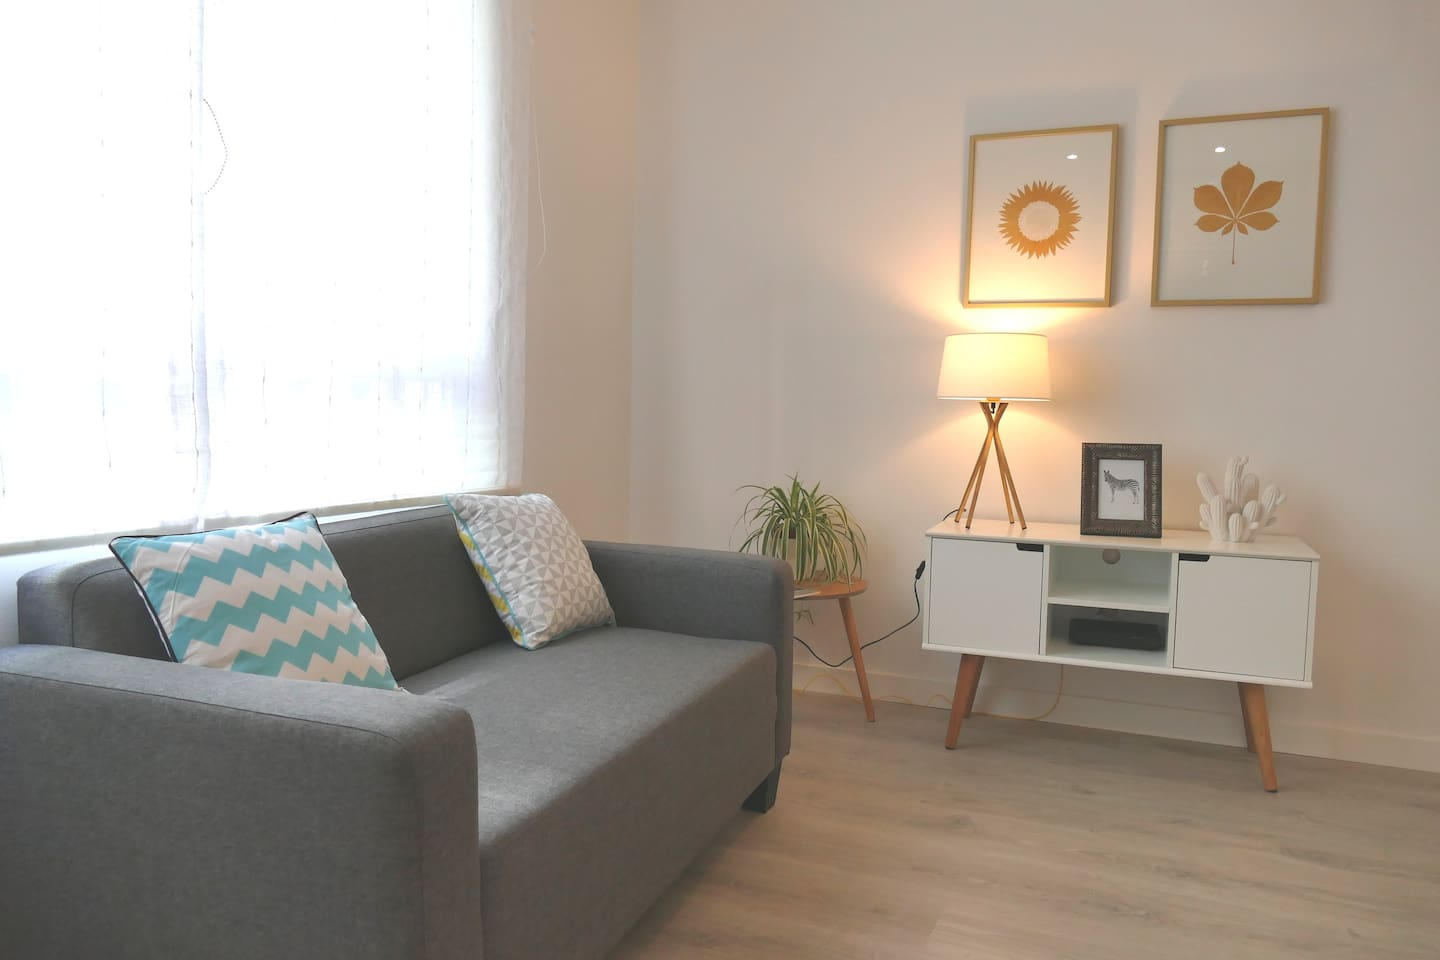 New Apartment Madrid Center Apartments For Rent In Madrid  # Muebles Tirso De Molina